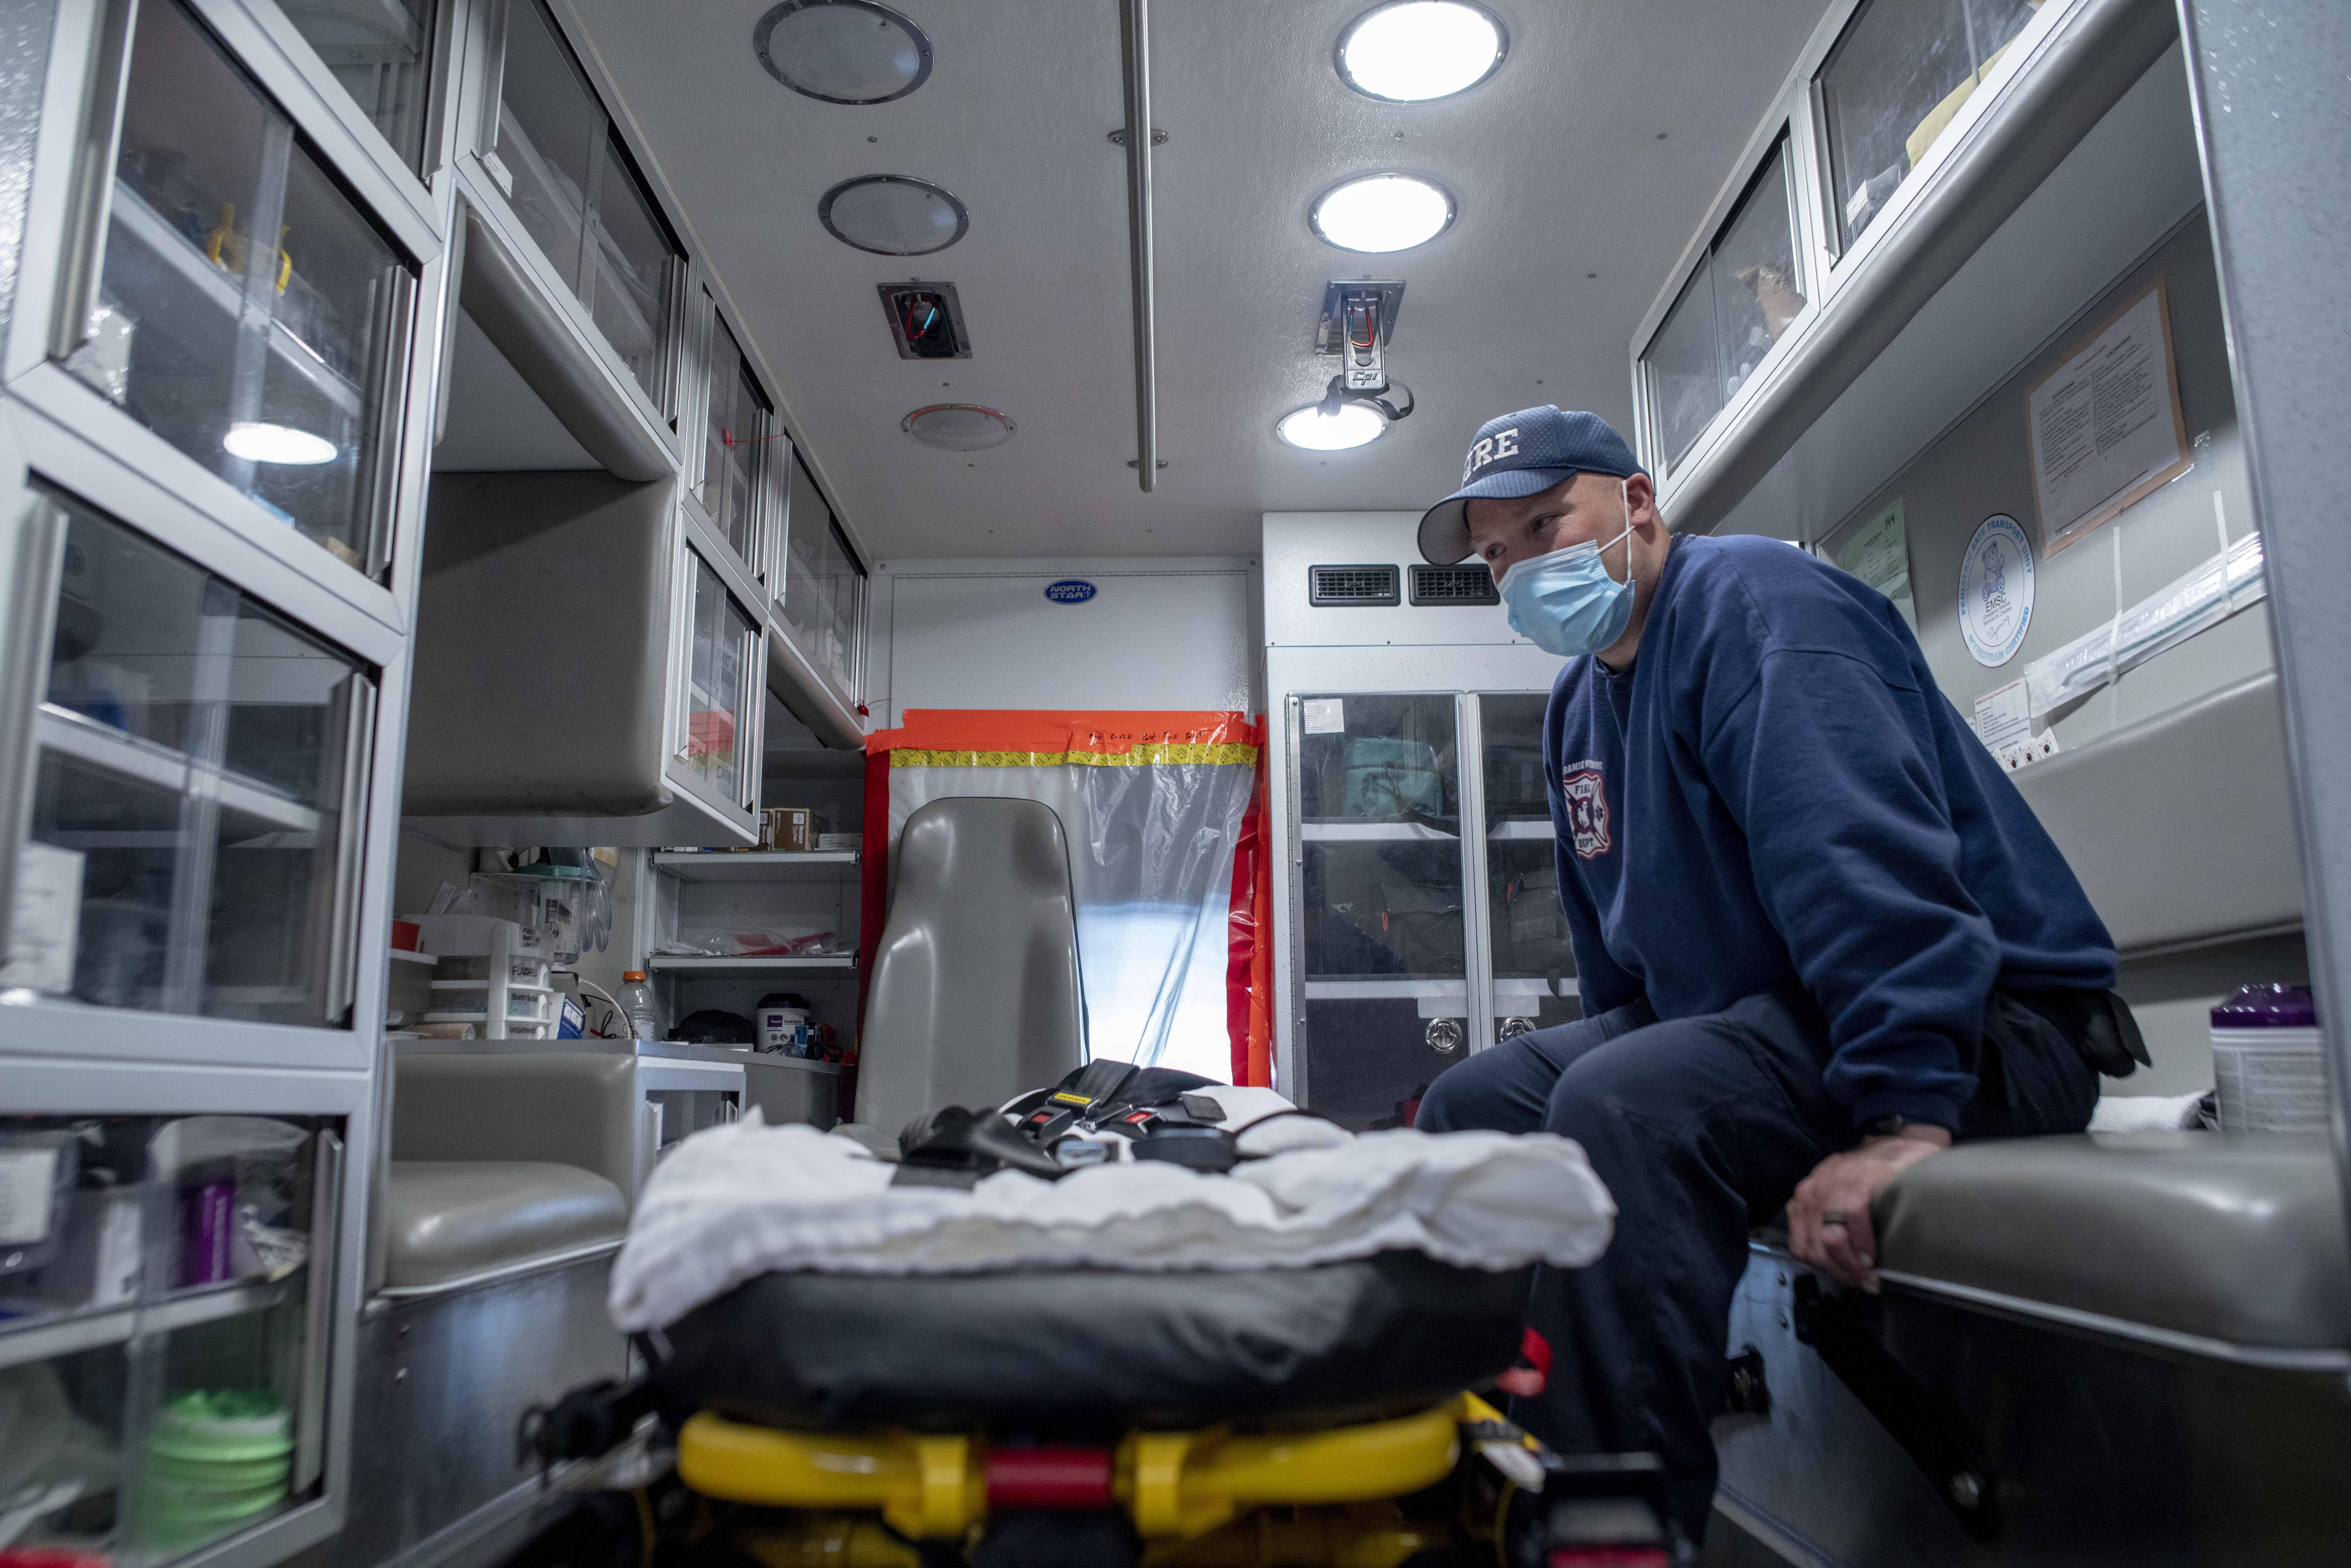 Ambulance services are on life support across Wyoming